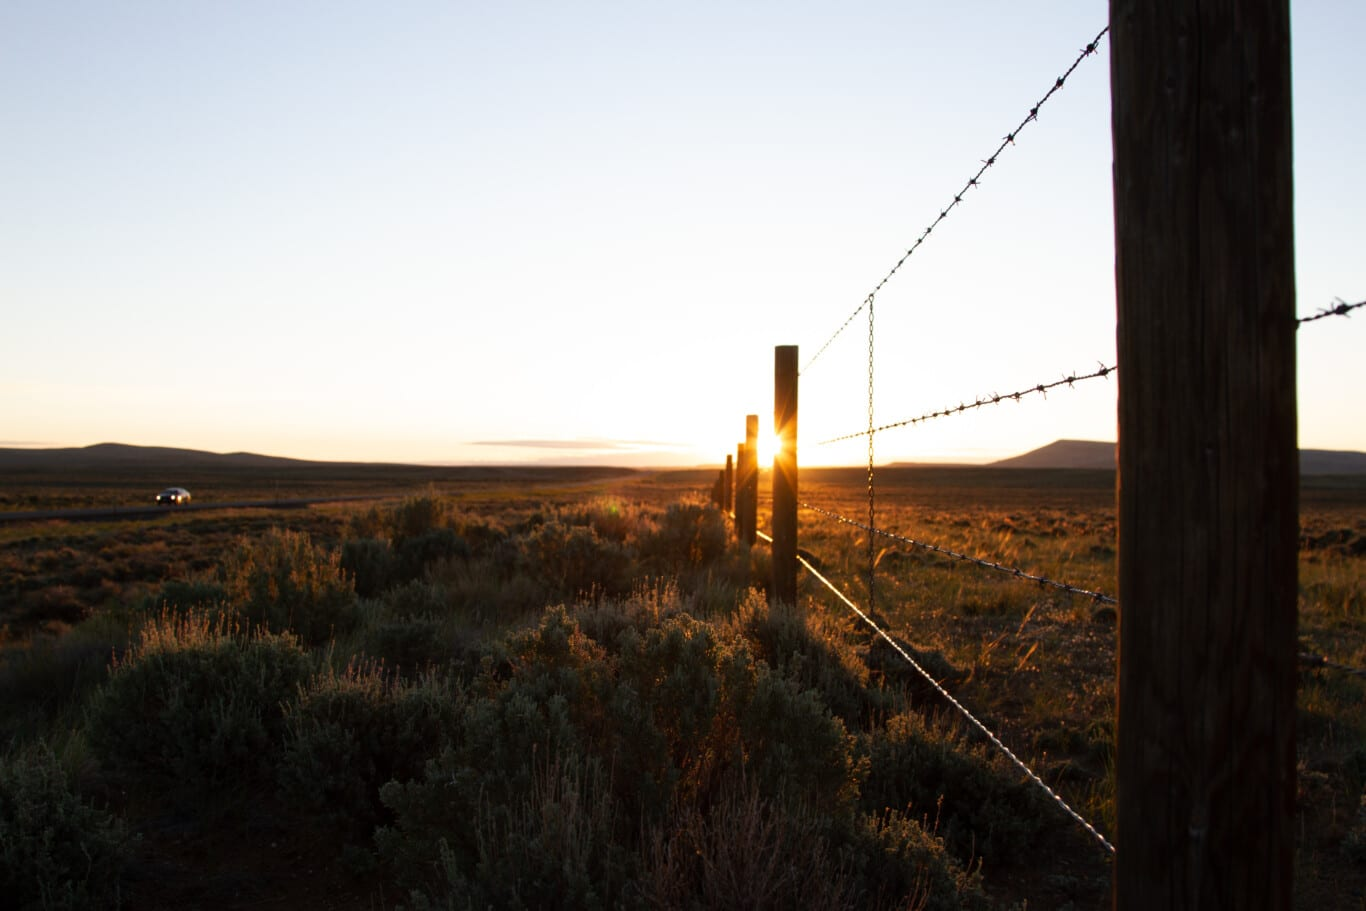 Sunrise Fenceline near Farson